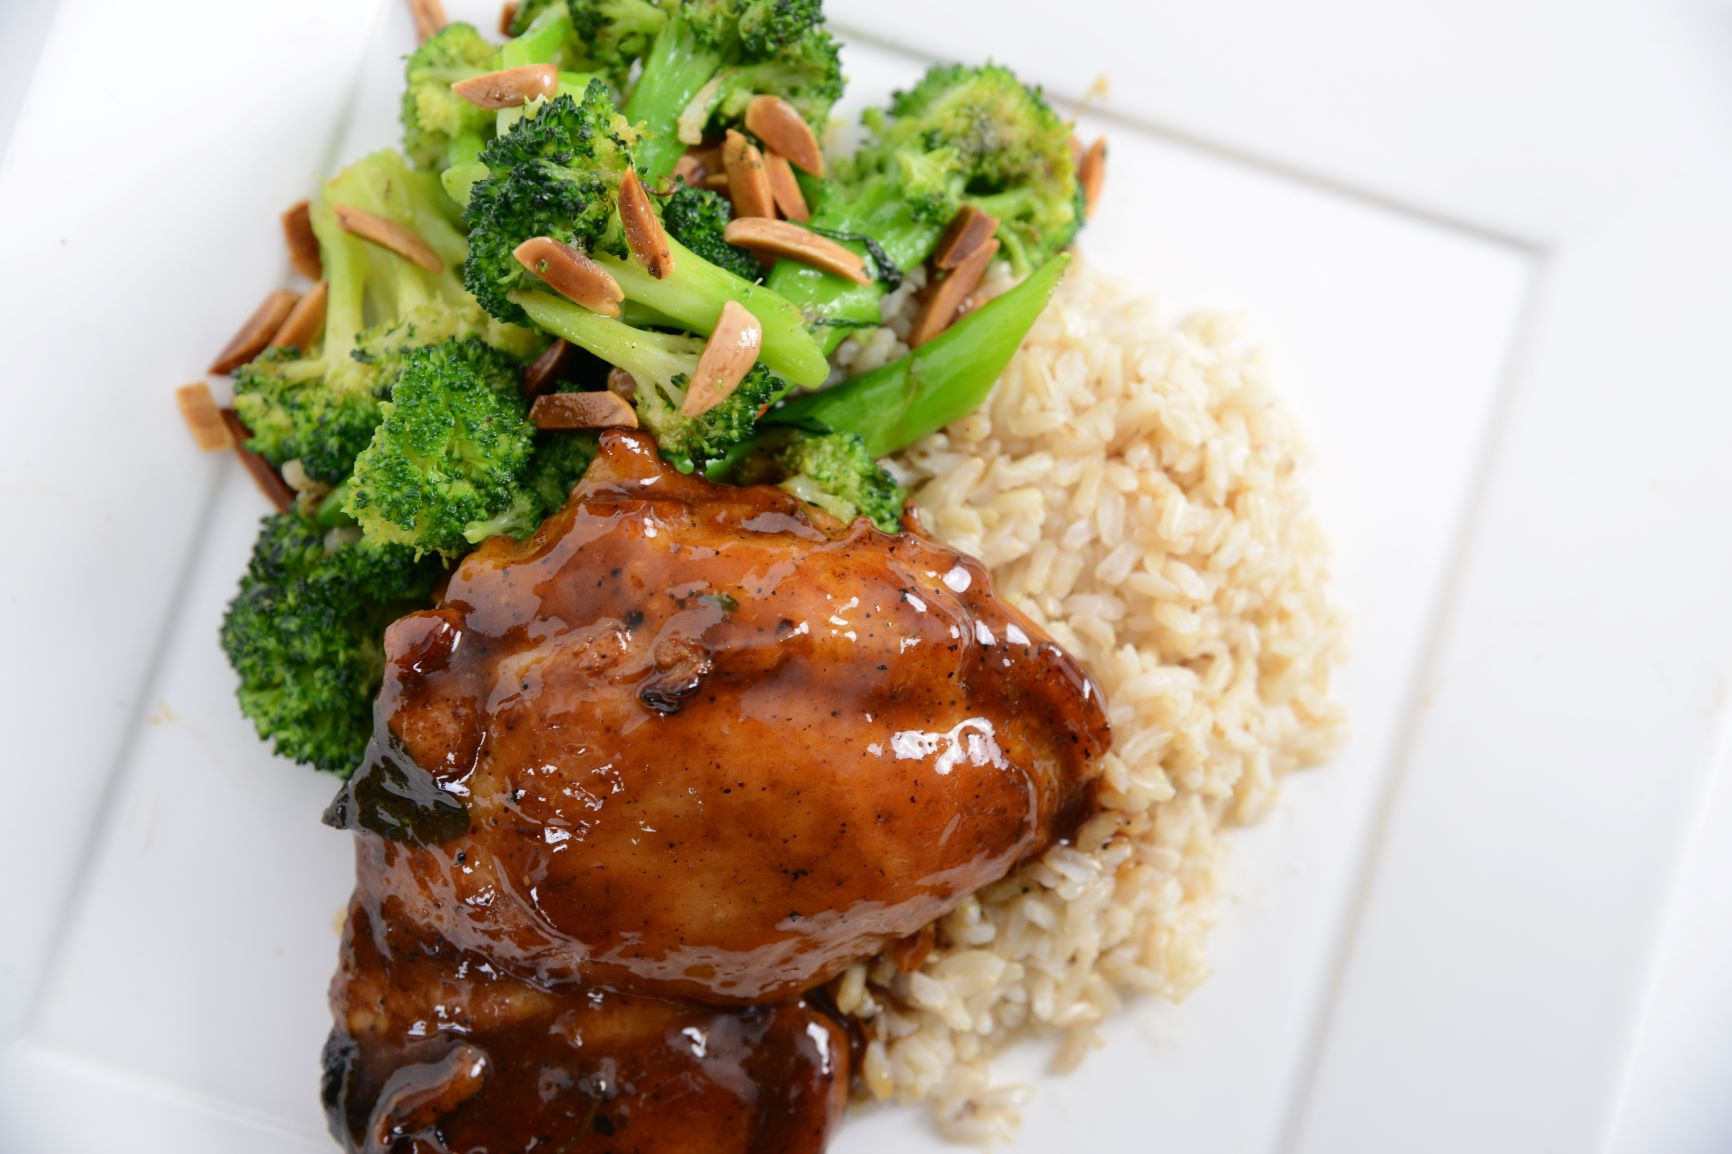 Coconut Amino Glazed Chicken Thigh (Monday 4/6 Delivery)